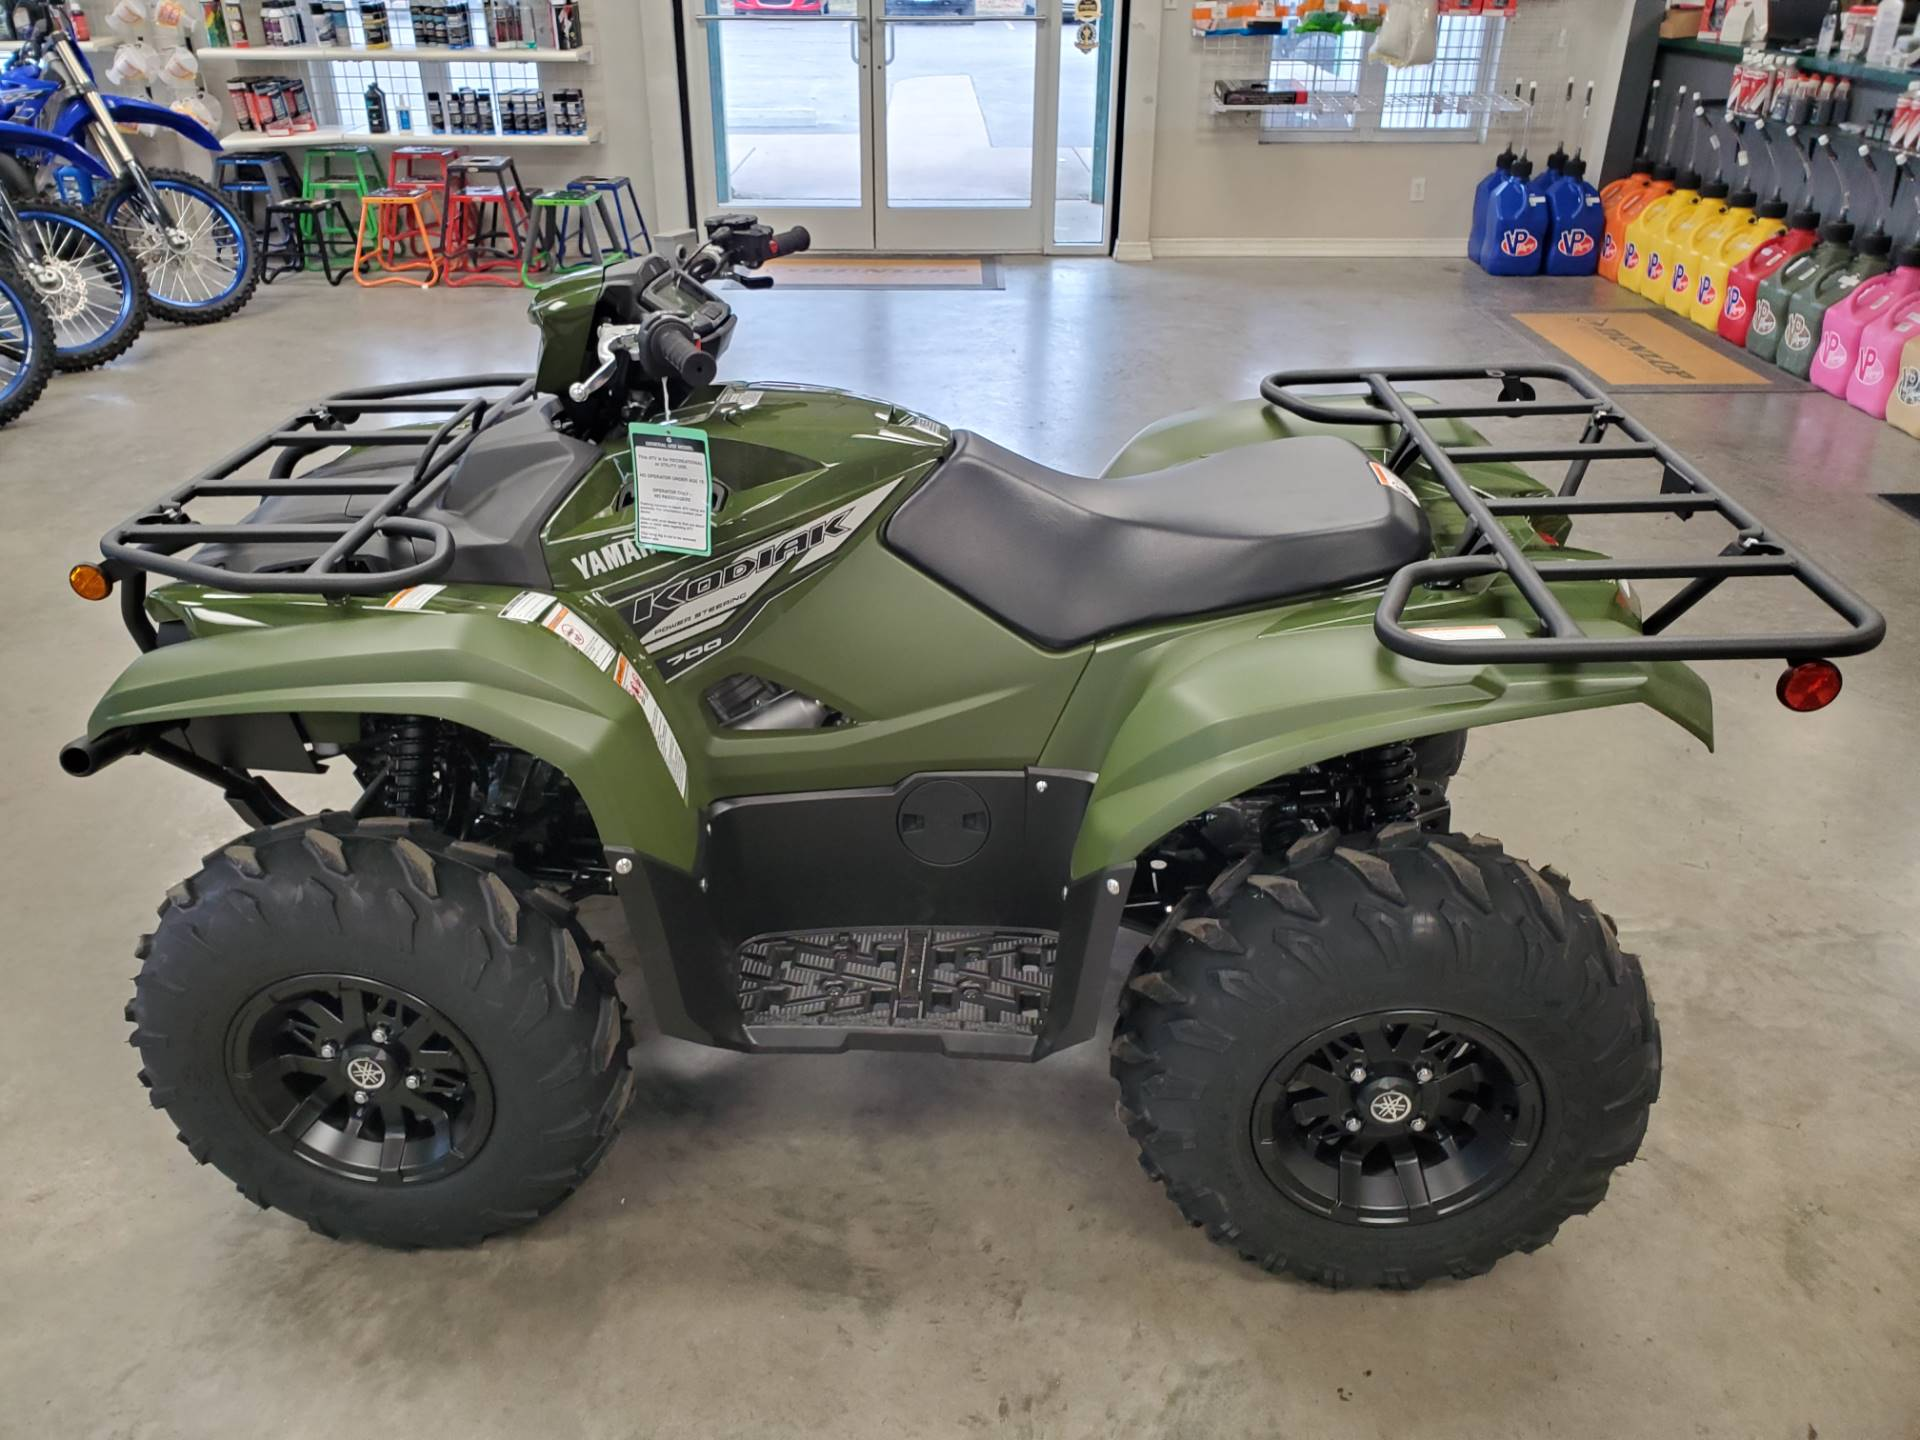 2021 Yamaha Kodiak 700 EPS in Herrin, Illinois - Photo 8